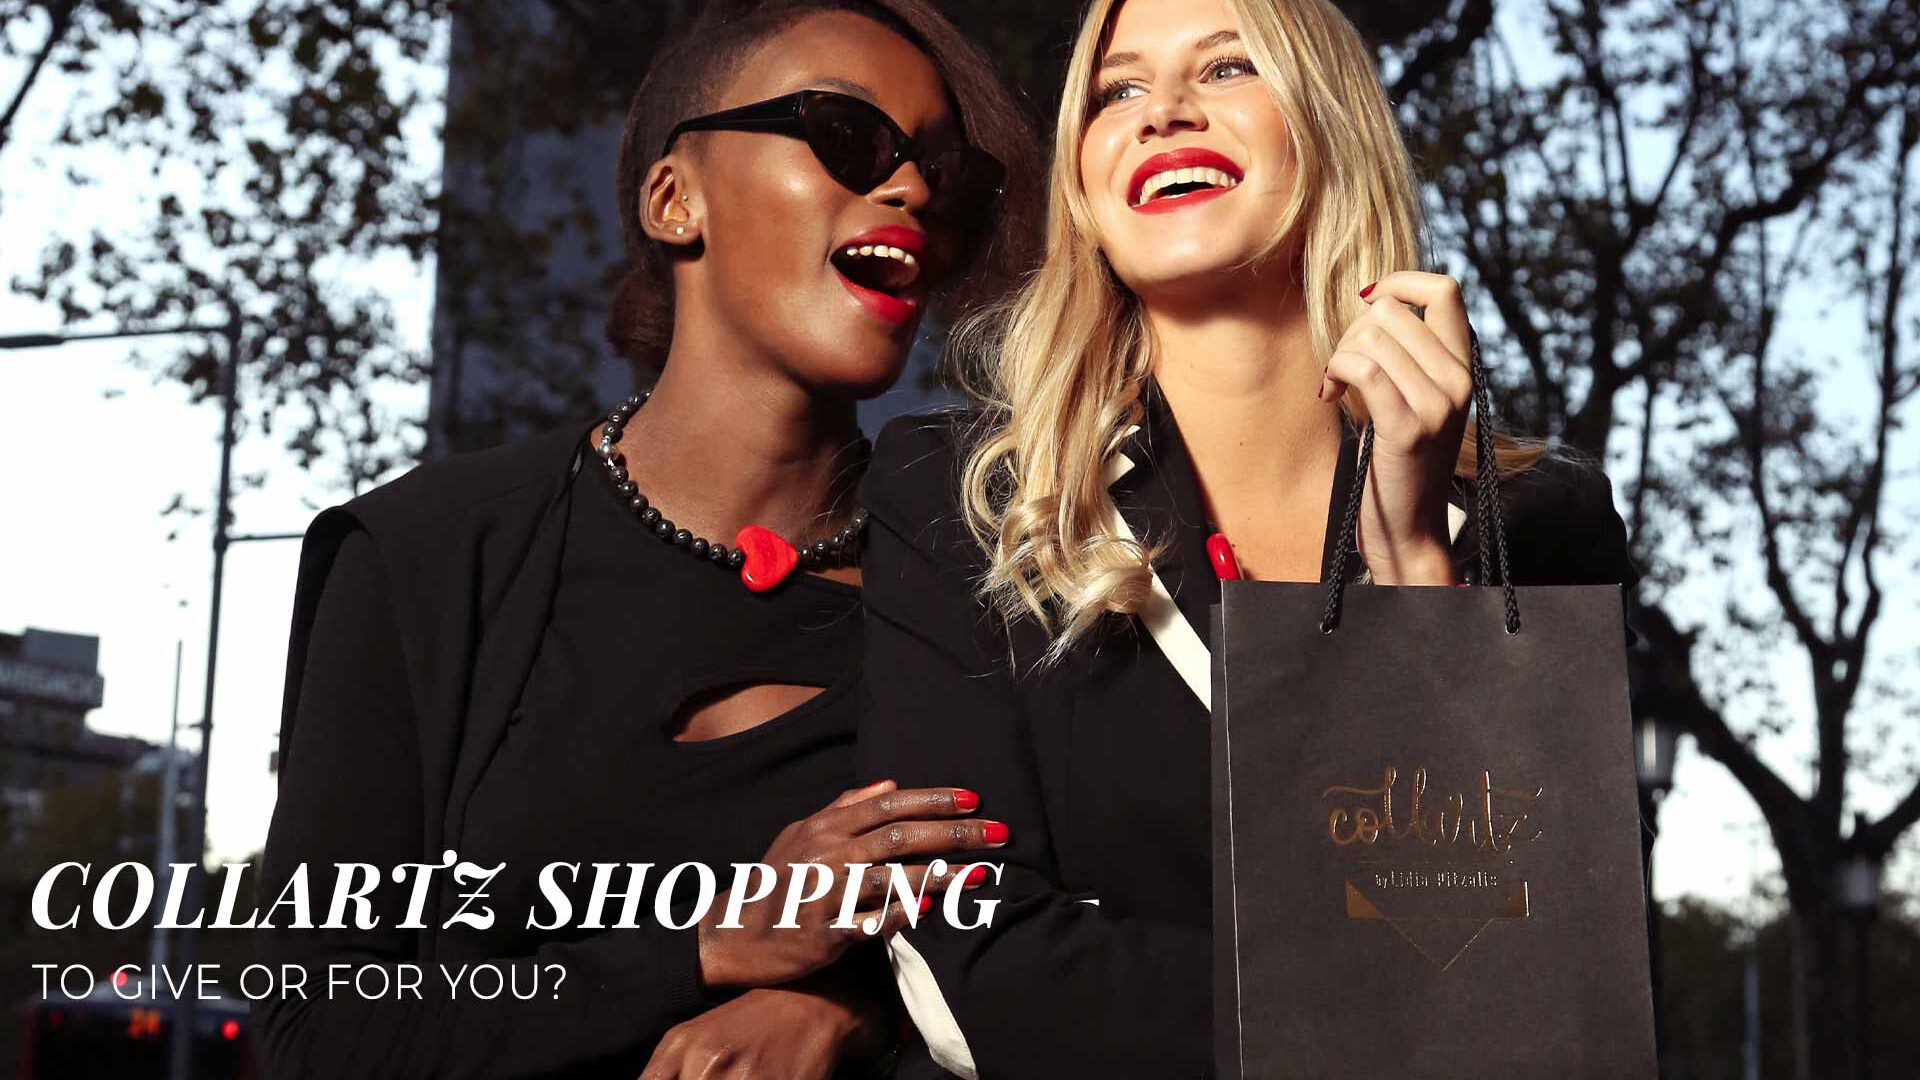 Collartz-Shopping-ENG